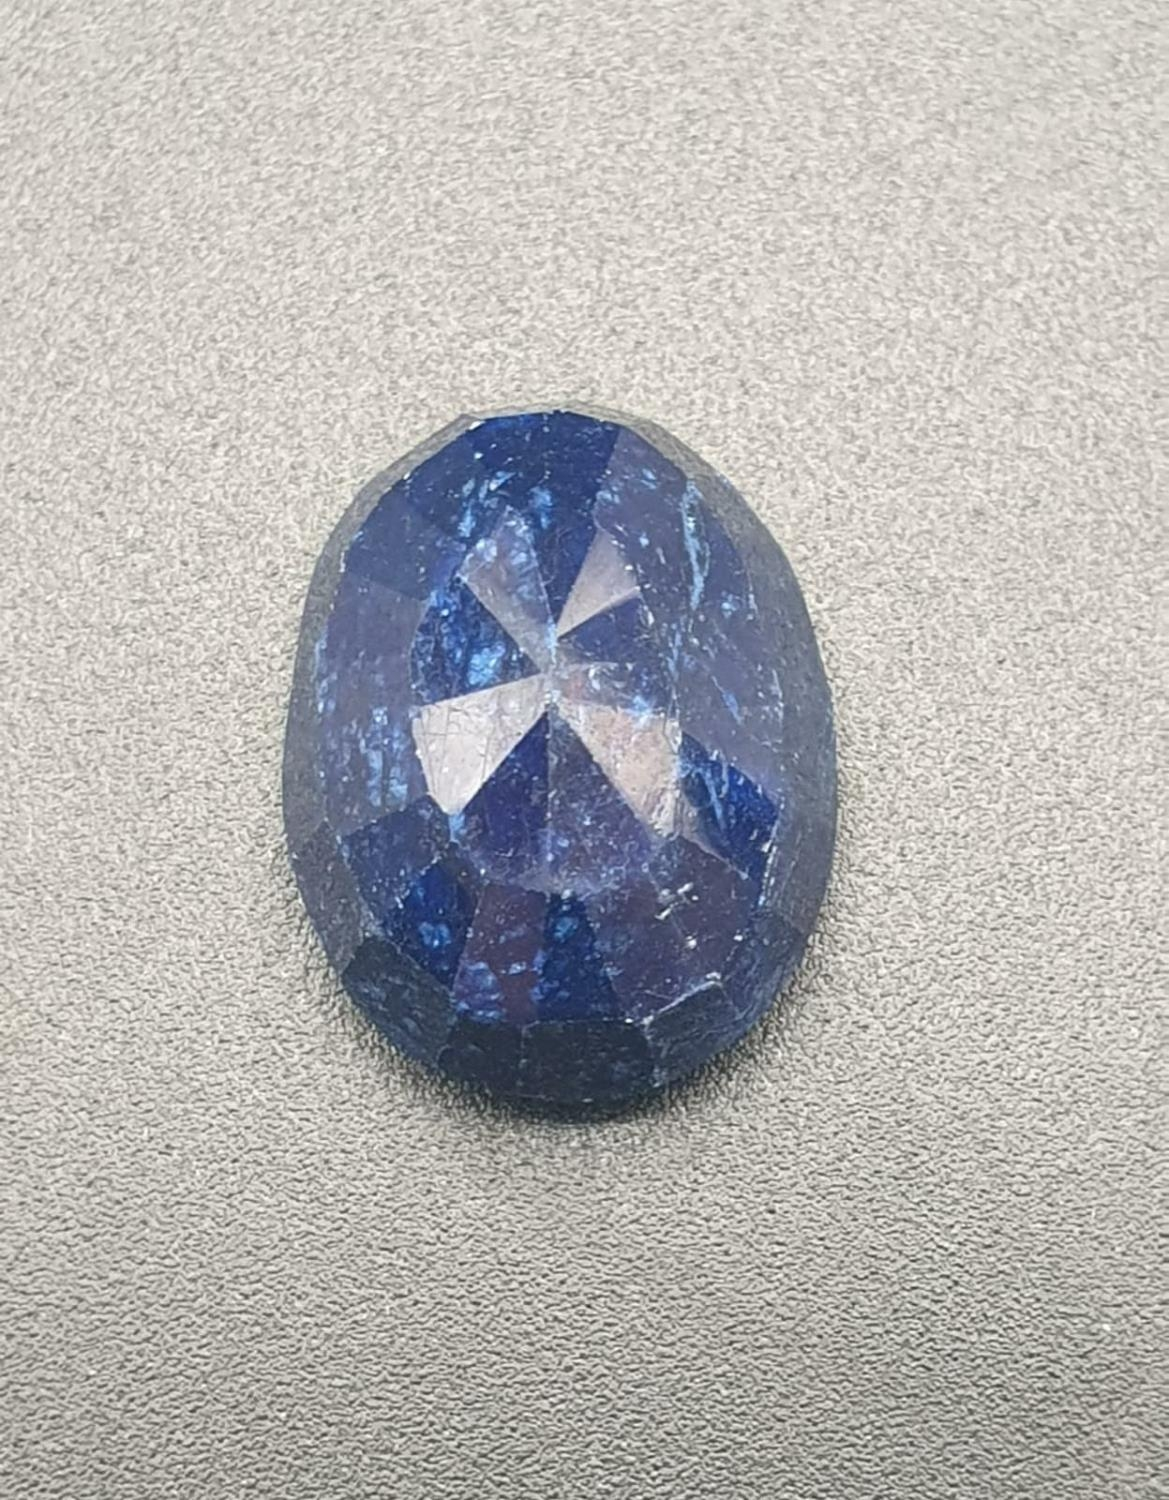 28.44 Cts Natural Sapphire stone Oval cut. IDT certified - Image 3 of 4